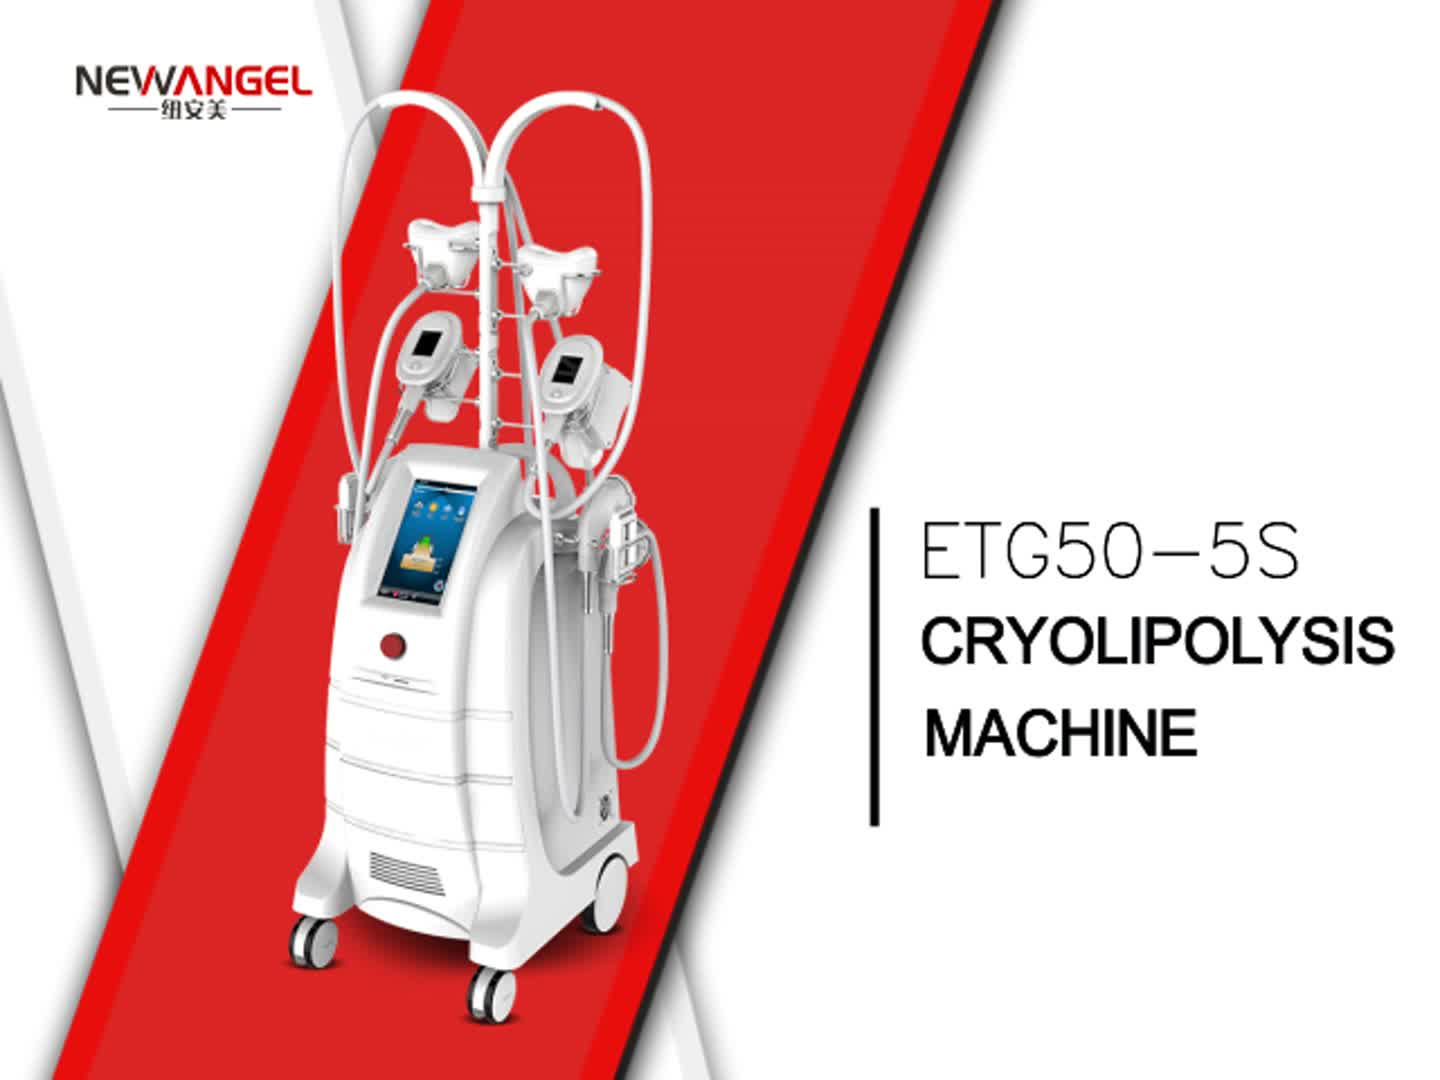 Cryolipolysis machine double chin treatment cryotherapy facial equipment